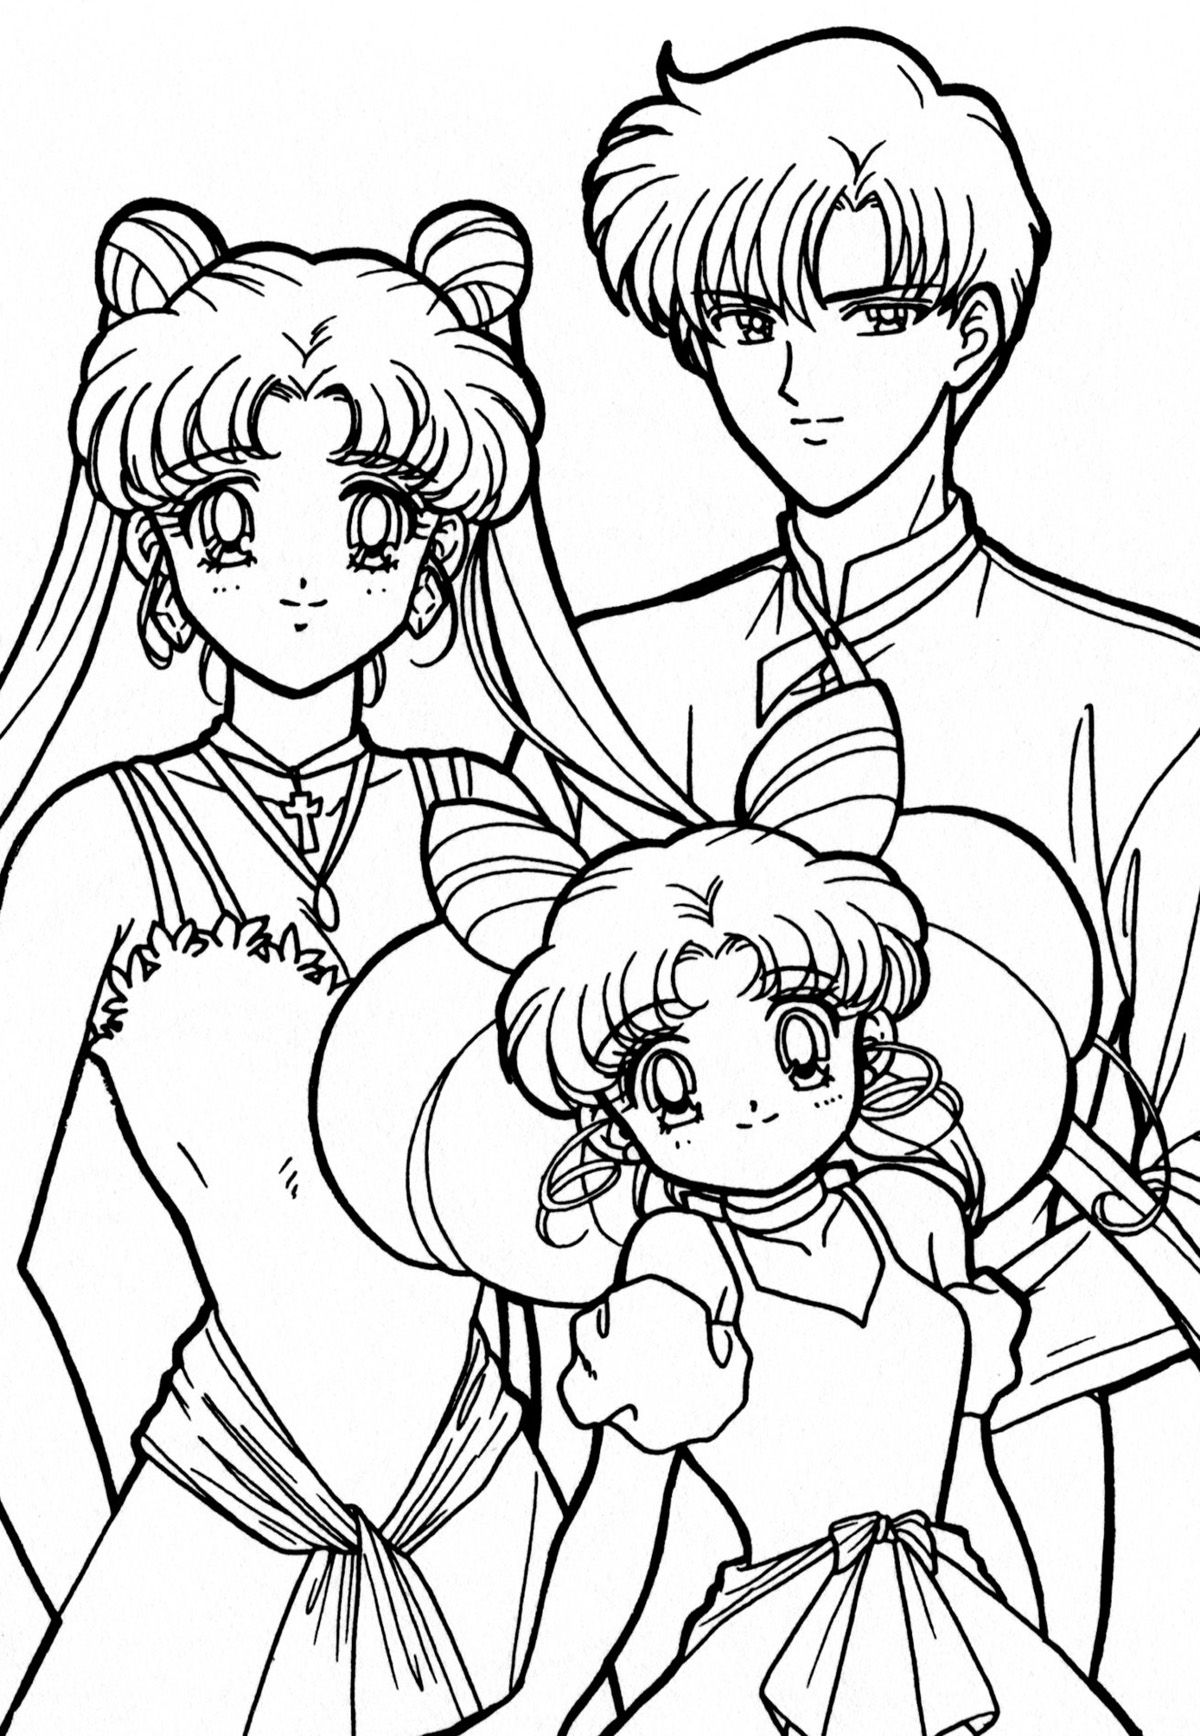 usagi mamoru and chibiusa coloring page sailormoon